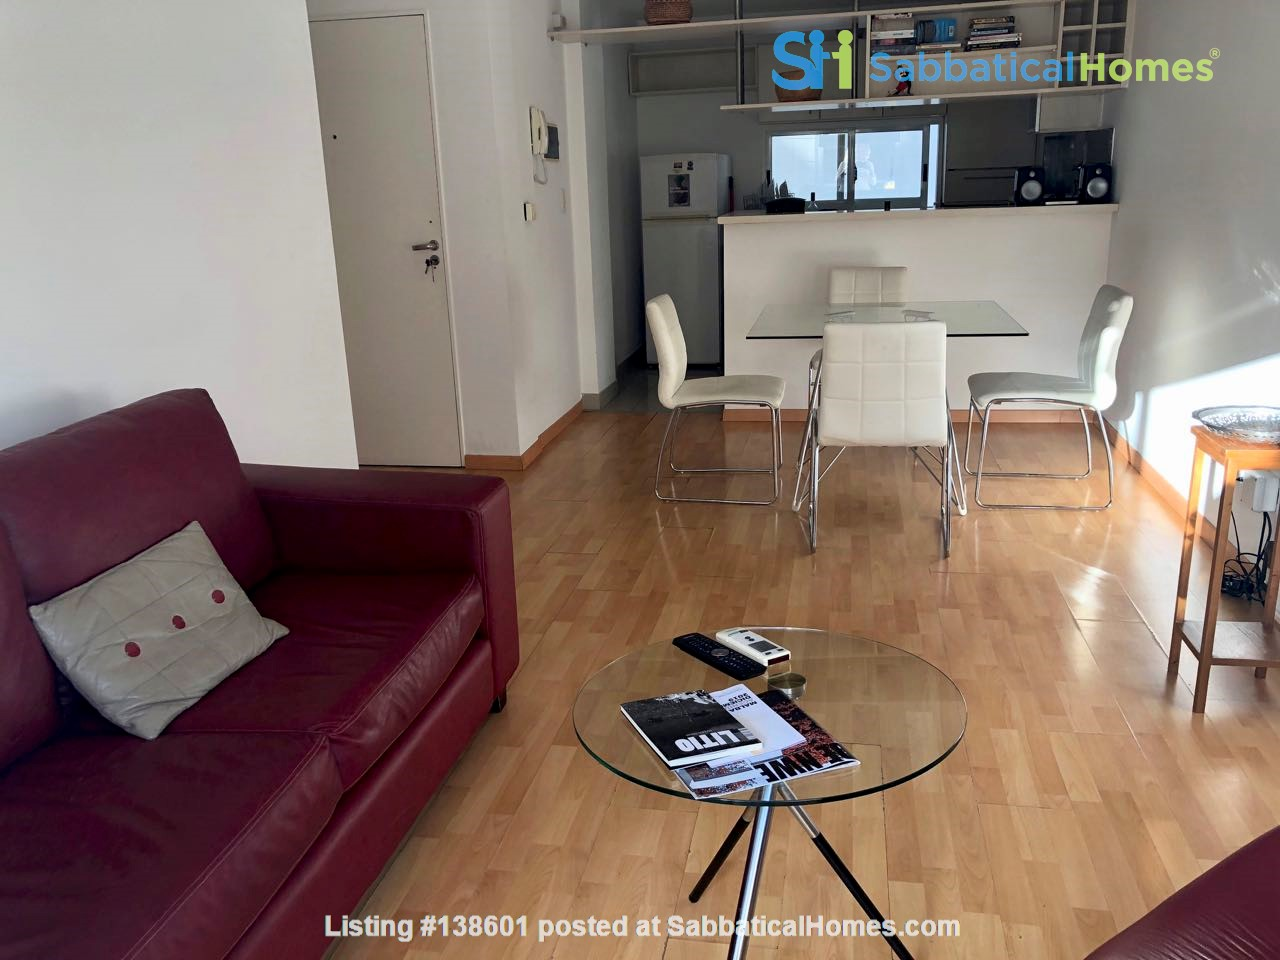 Luminous two bedroom apartment with  two bathrooms and two balconies Home Rental in Comuna 14, Buenos Aires, Argentina 0